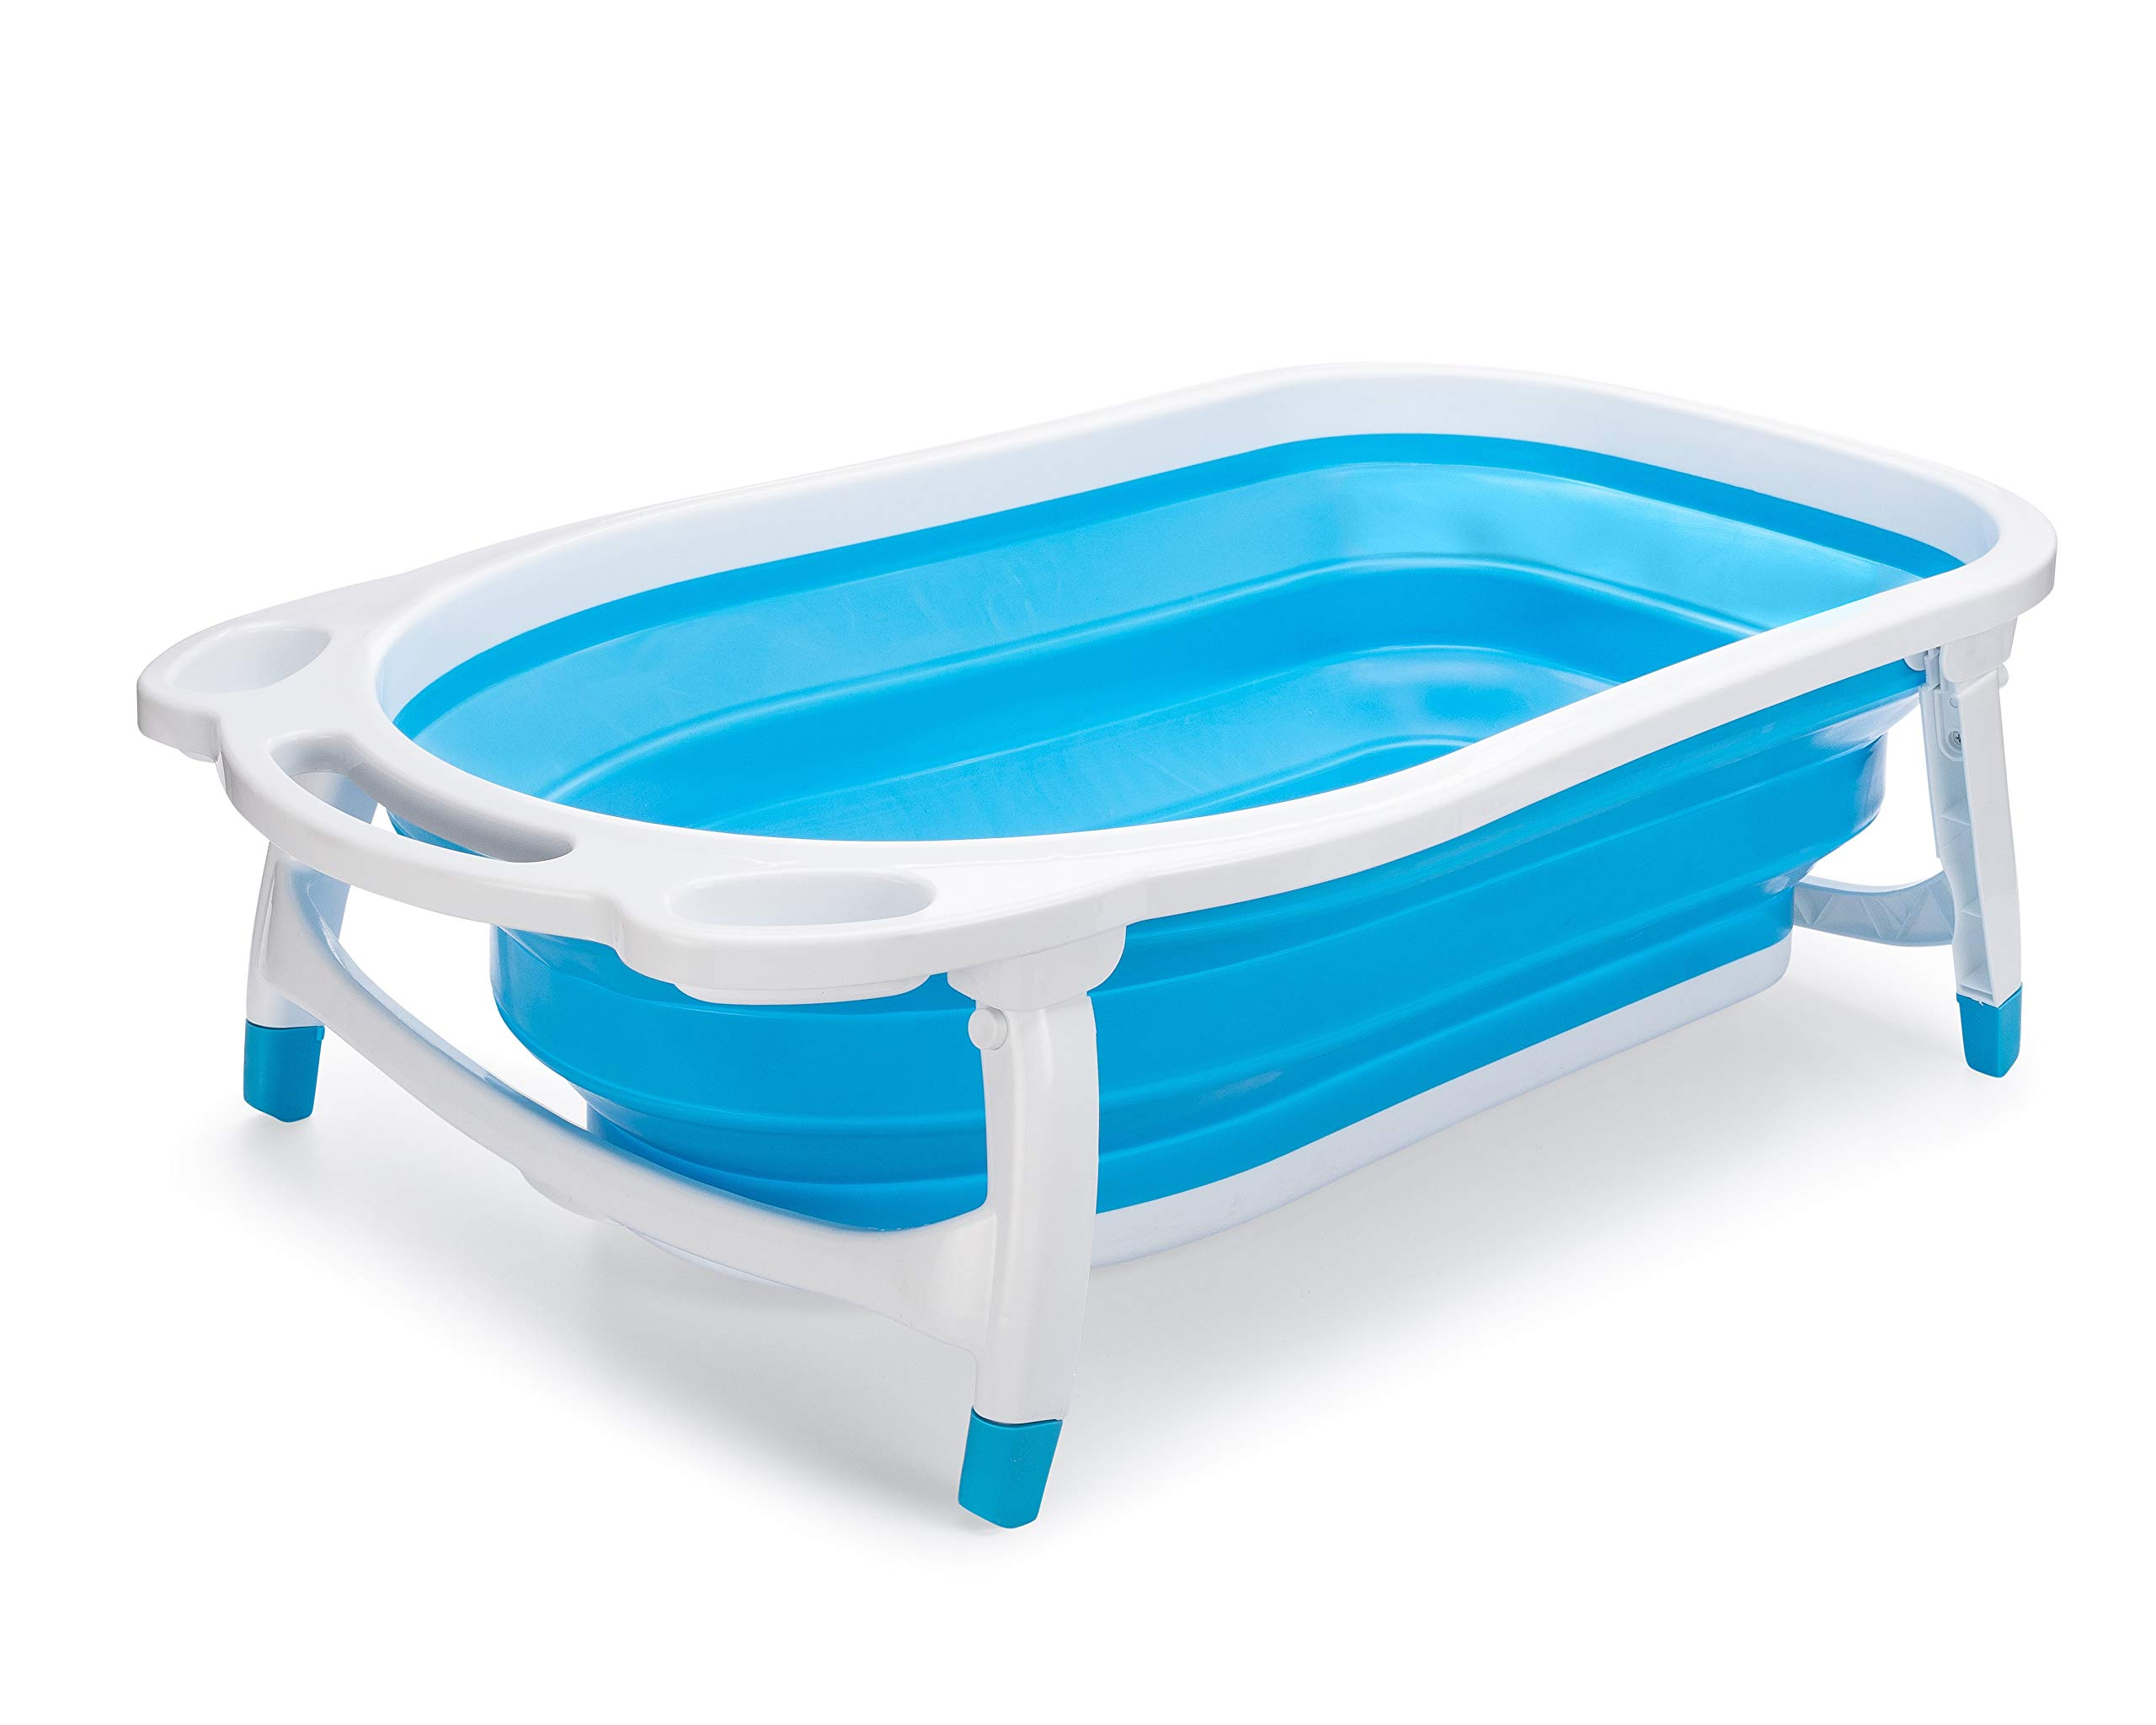 Collapsible Baby Bath Tub for Newborn Infant Child   Hypoallergenic Non-Slip Surface and Legs for Kids Safety   Bathing Made Easy and Portable by Foldable Technology by Vertex-llc